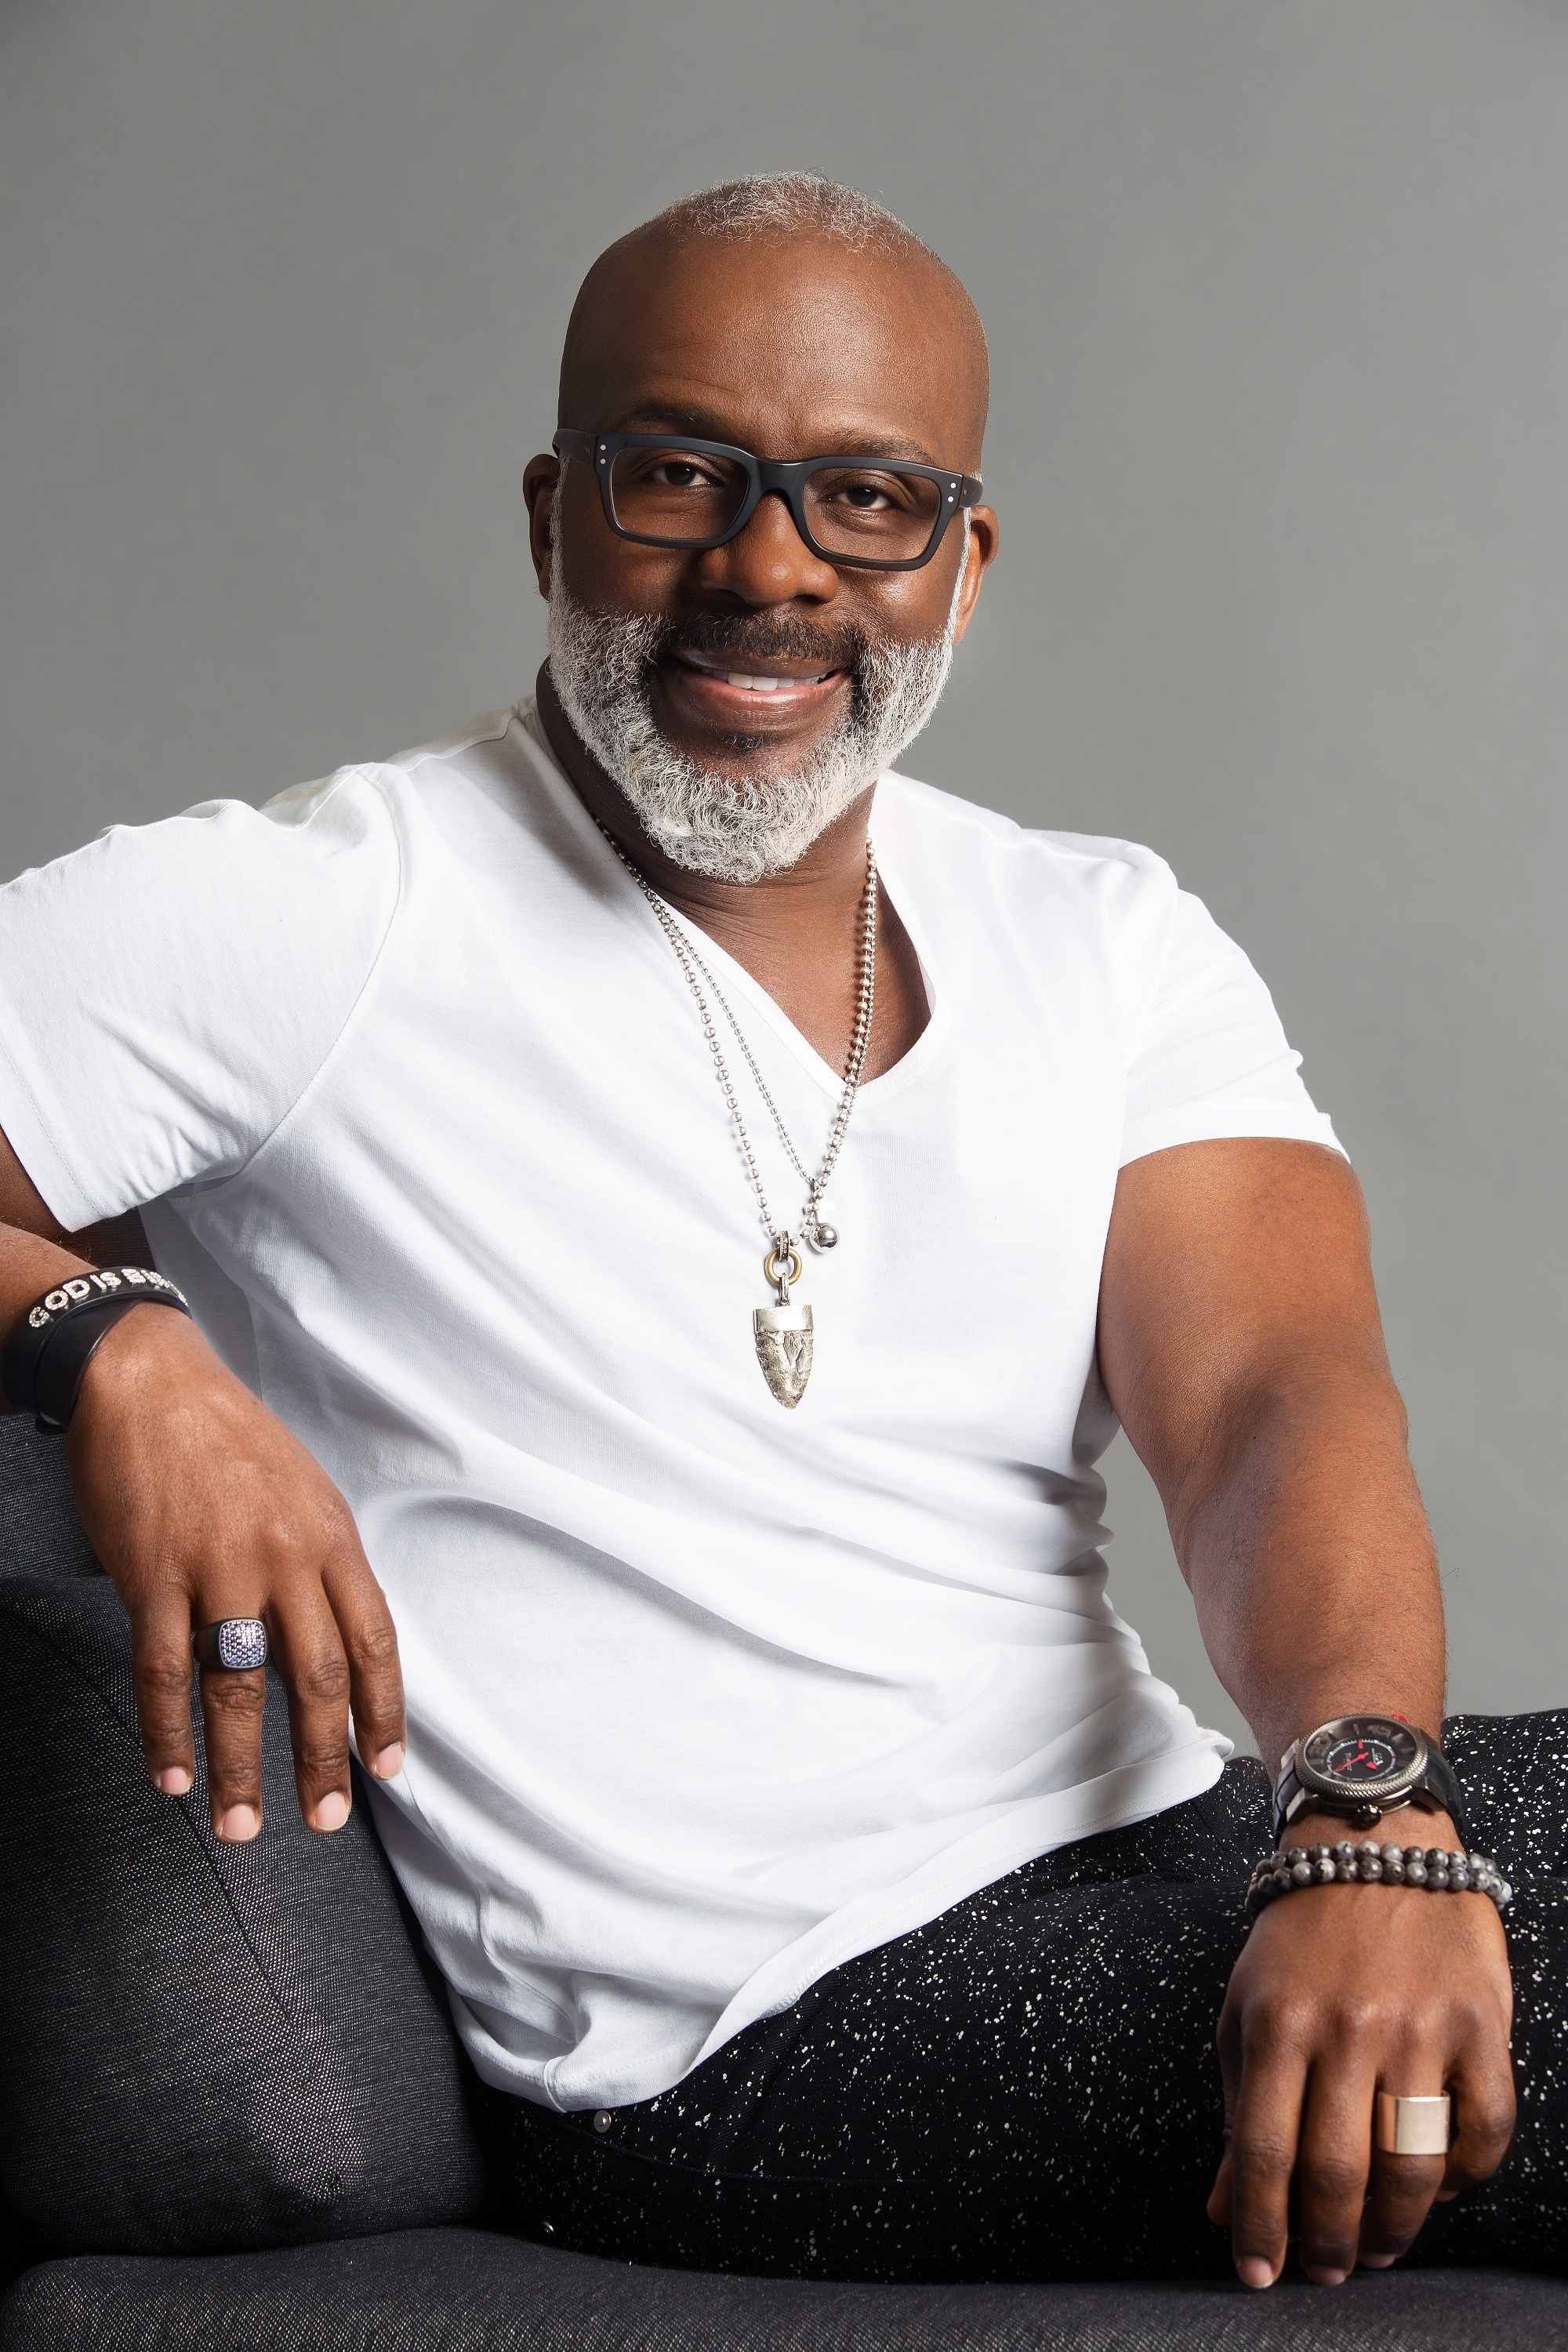 Bebe Winans Dishes About His New Jim Bakker And Tammy Faye-Inspired Musical 'Born For This'